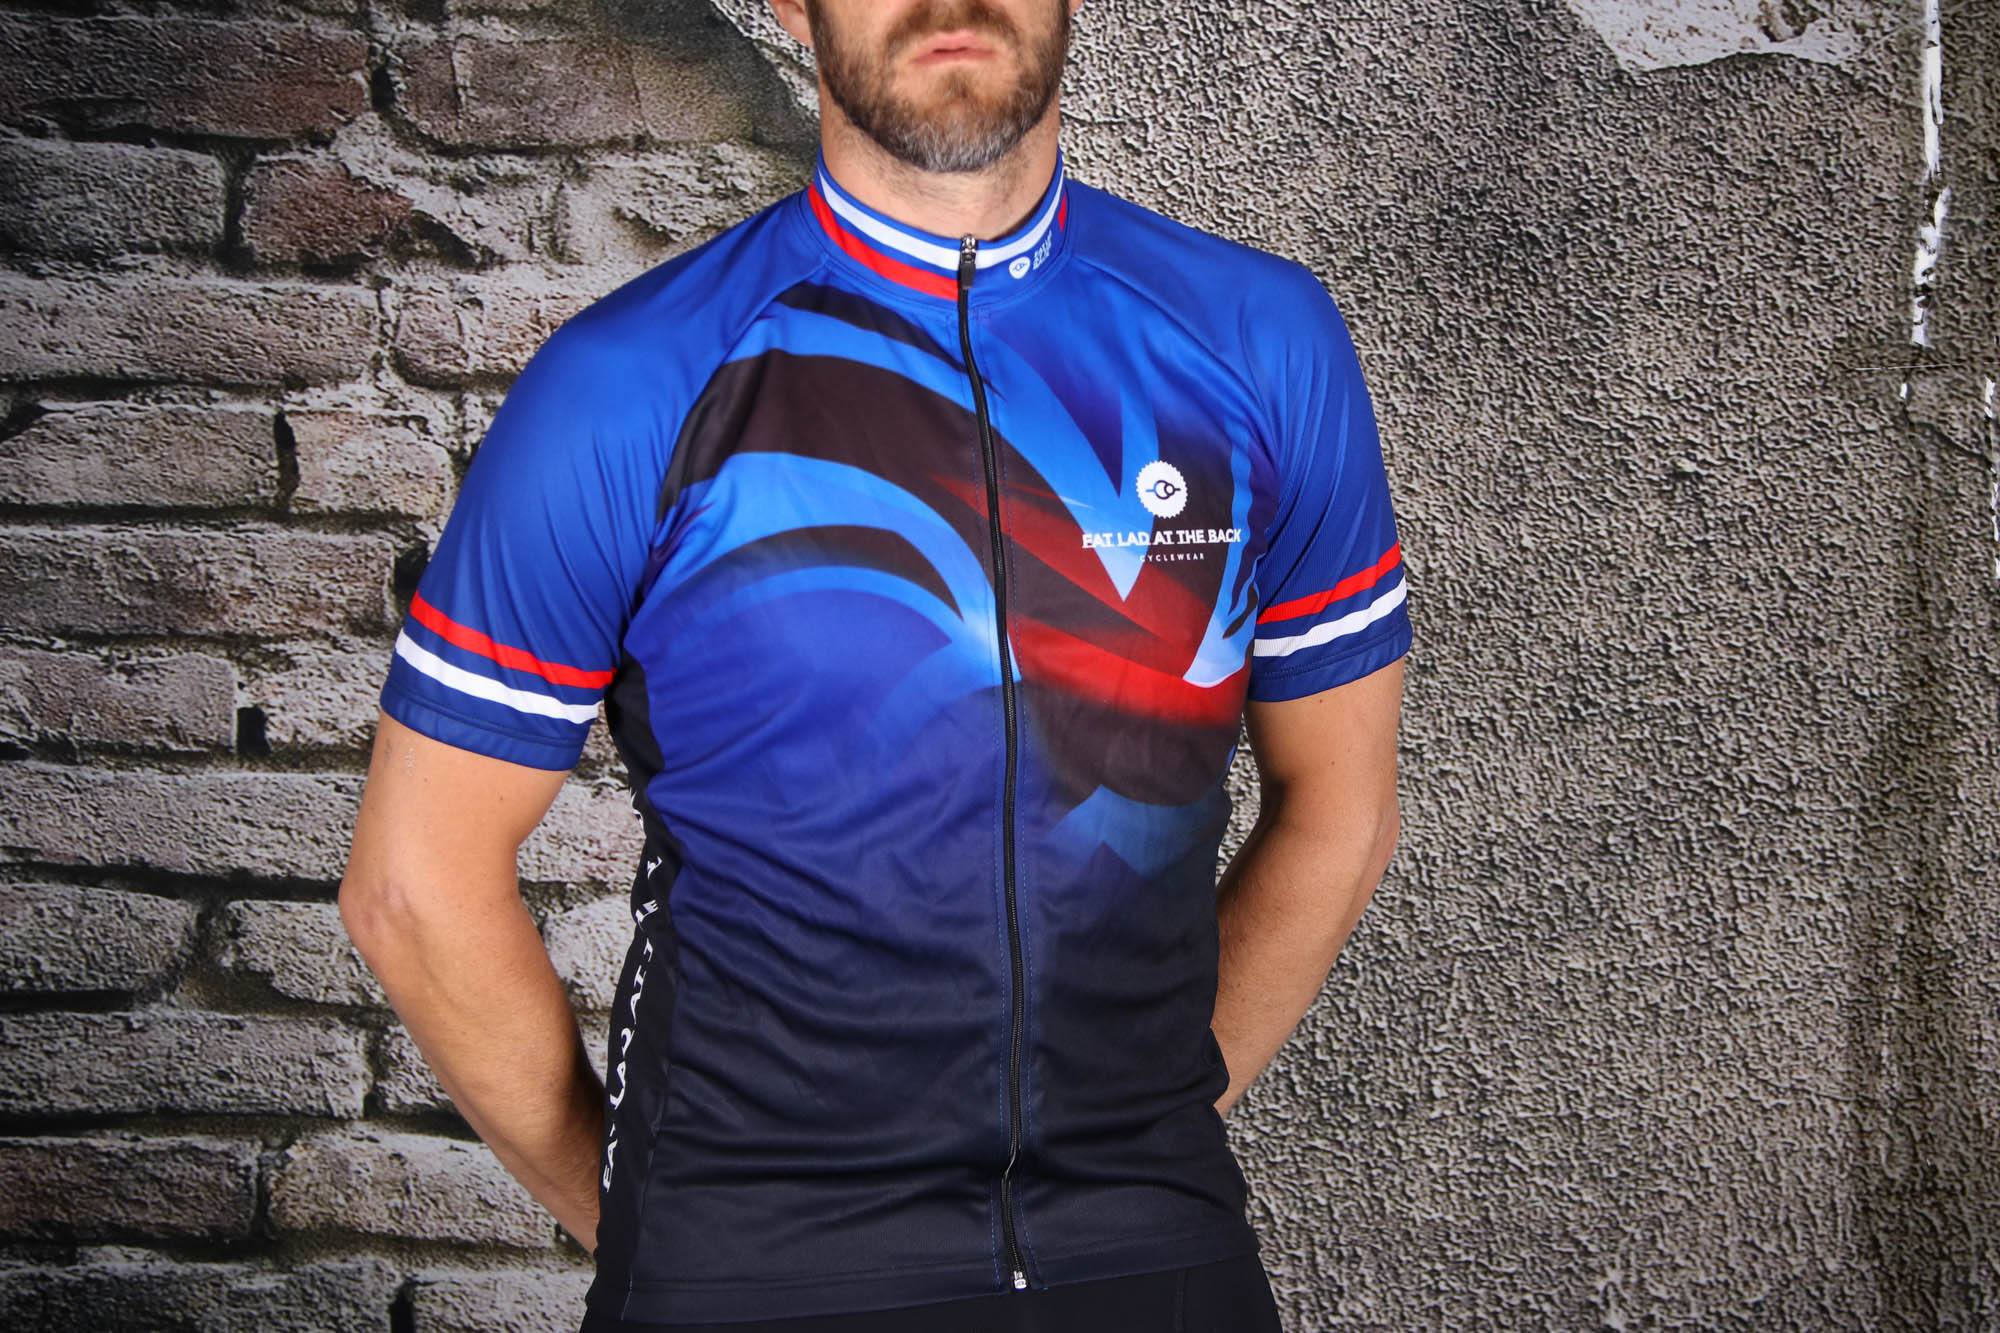 d7ec14c0a Review  Fat Lad At The Back Men s Short Sleeve Union Jack Cycling .